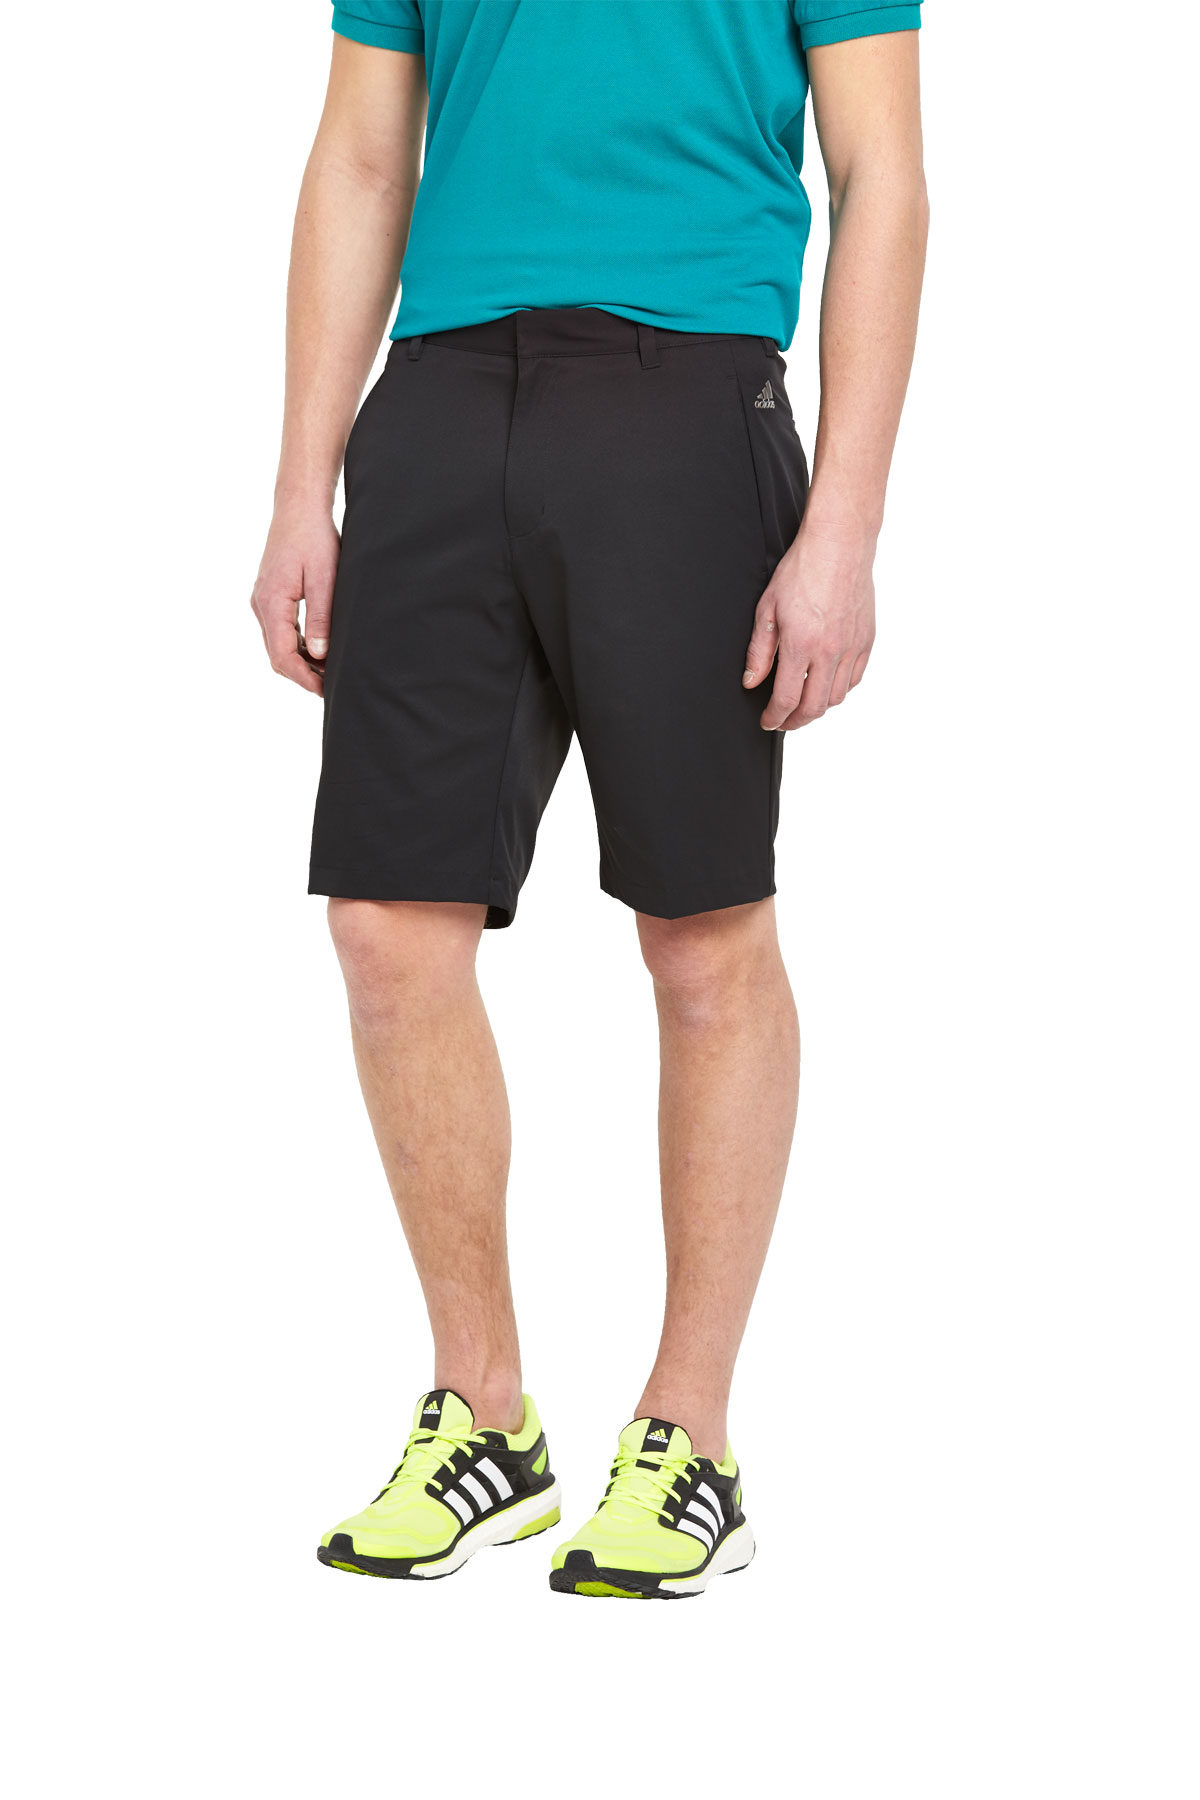 Adidas Mens Golf PureMotion 3 Stripe Shorts